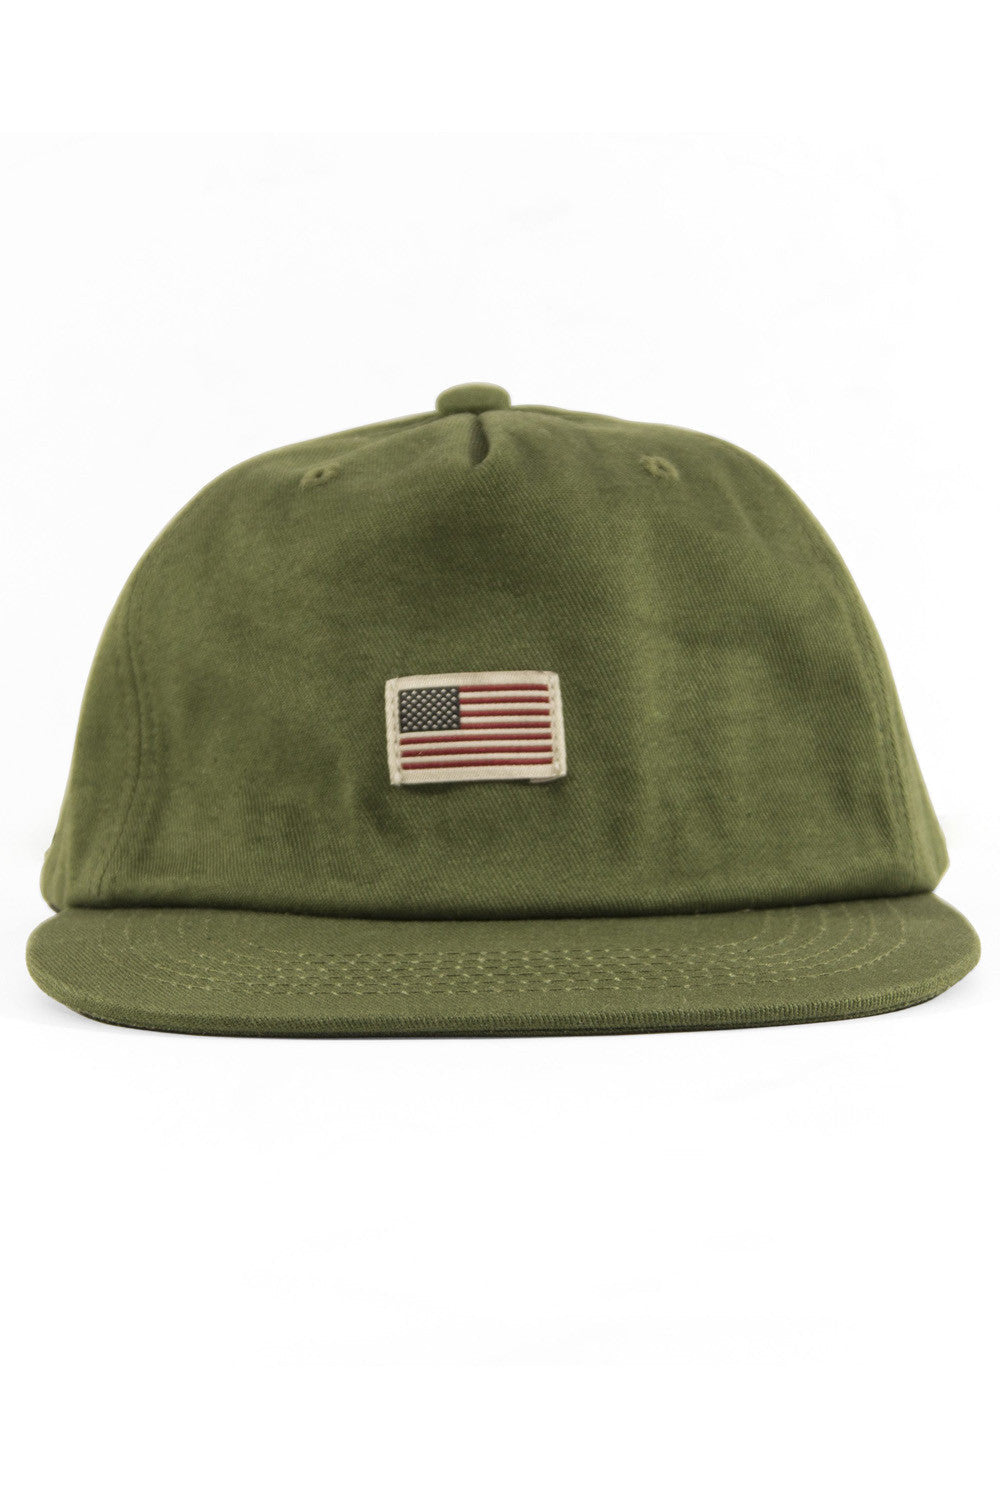 US Flag Cotton Baseball Cap - Olive